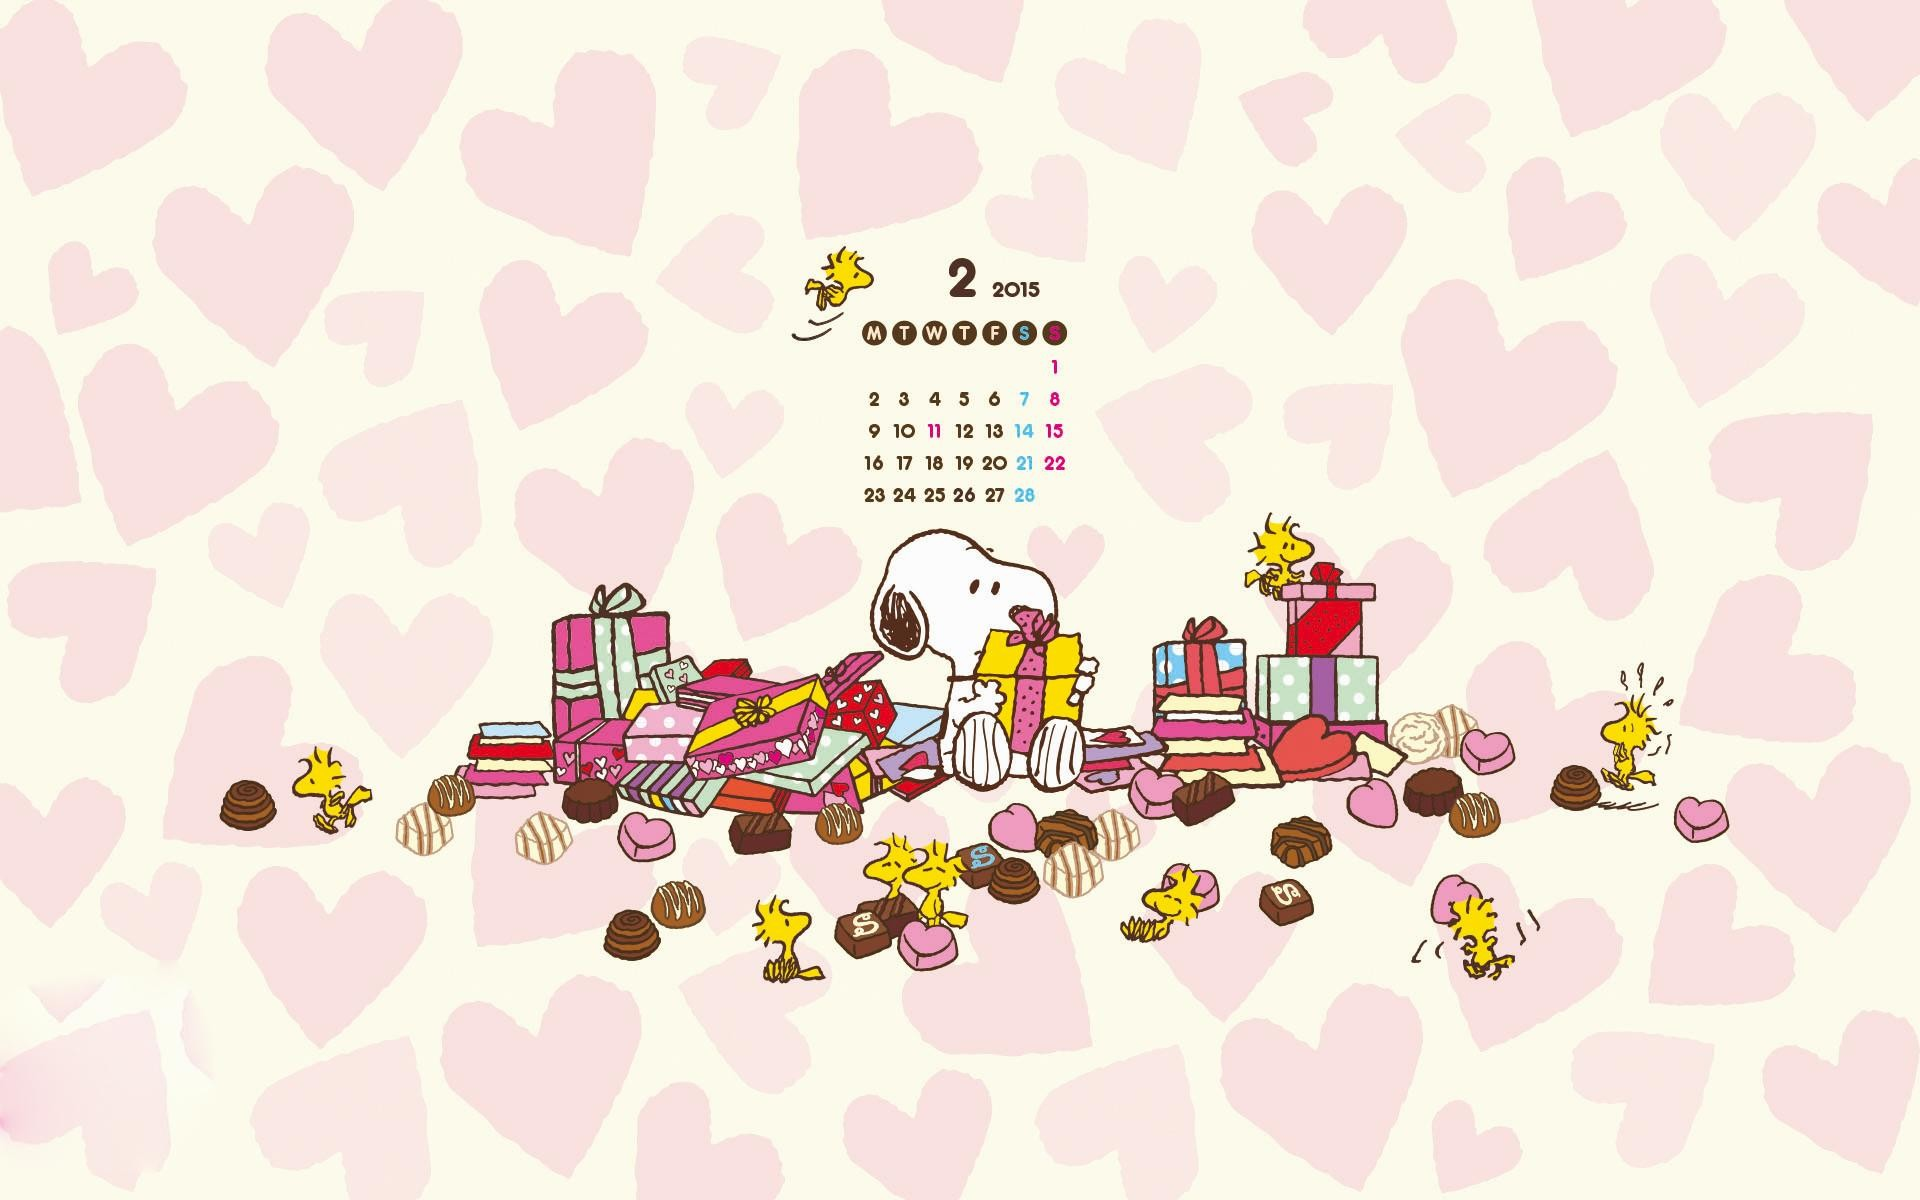 Anime Girl Thanksgiving Wallpaper Peanuts Valentines Wallpaper 53 Images